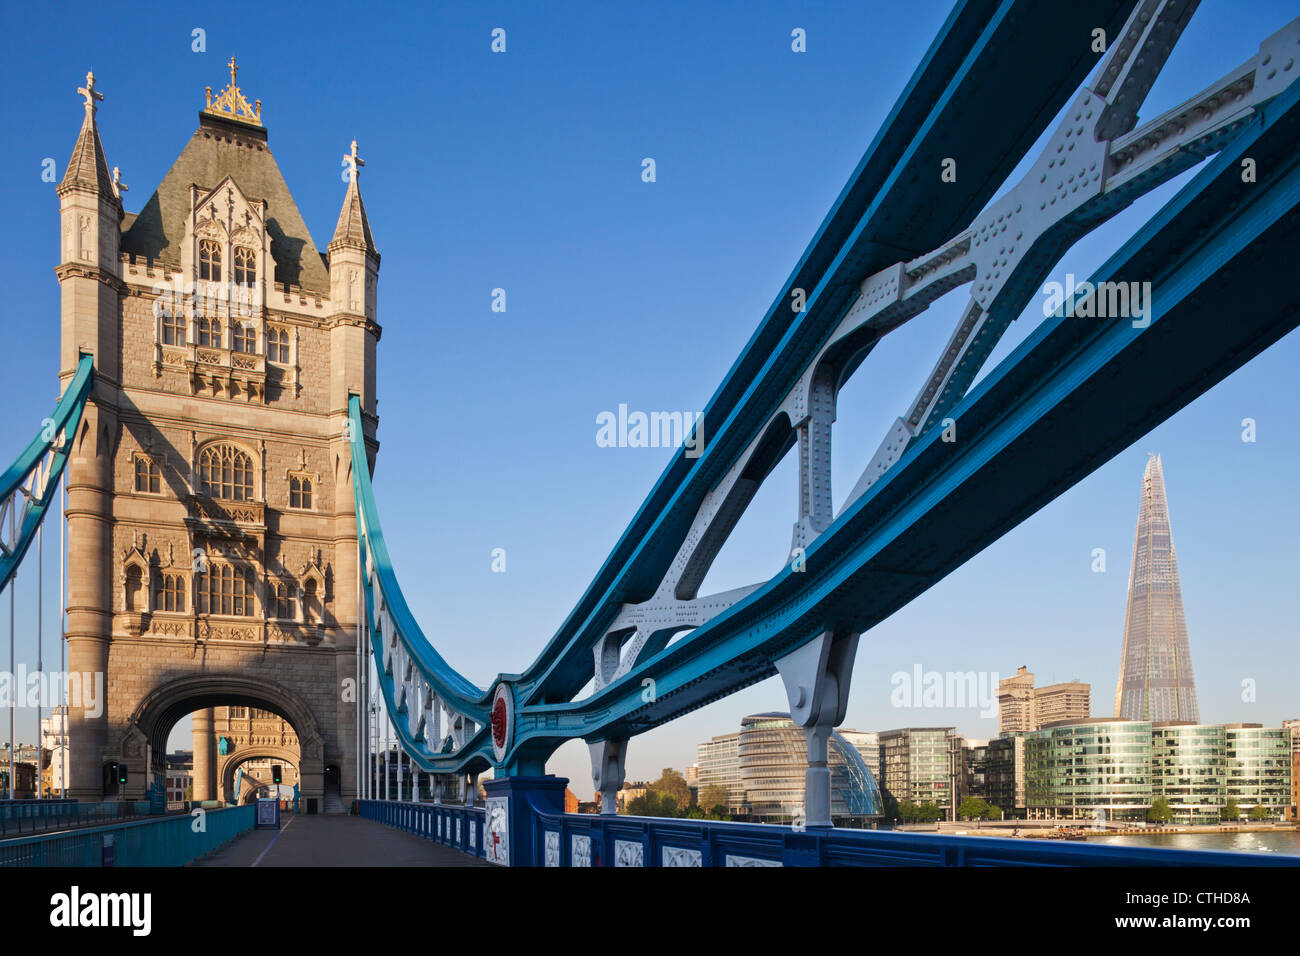 Inghilterra, Londra, Southwark, il Tower Bridge e la Shard Foto Stock